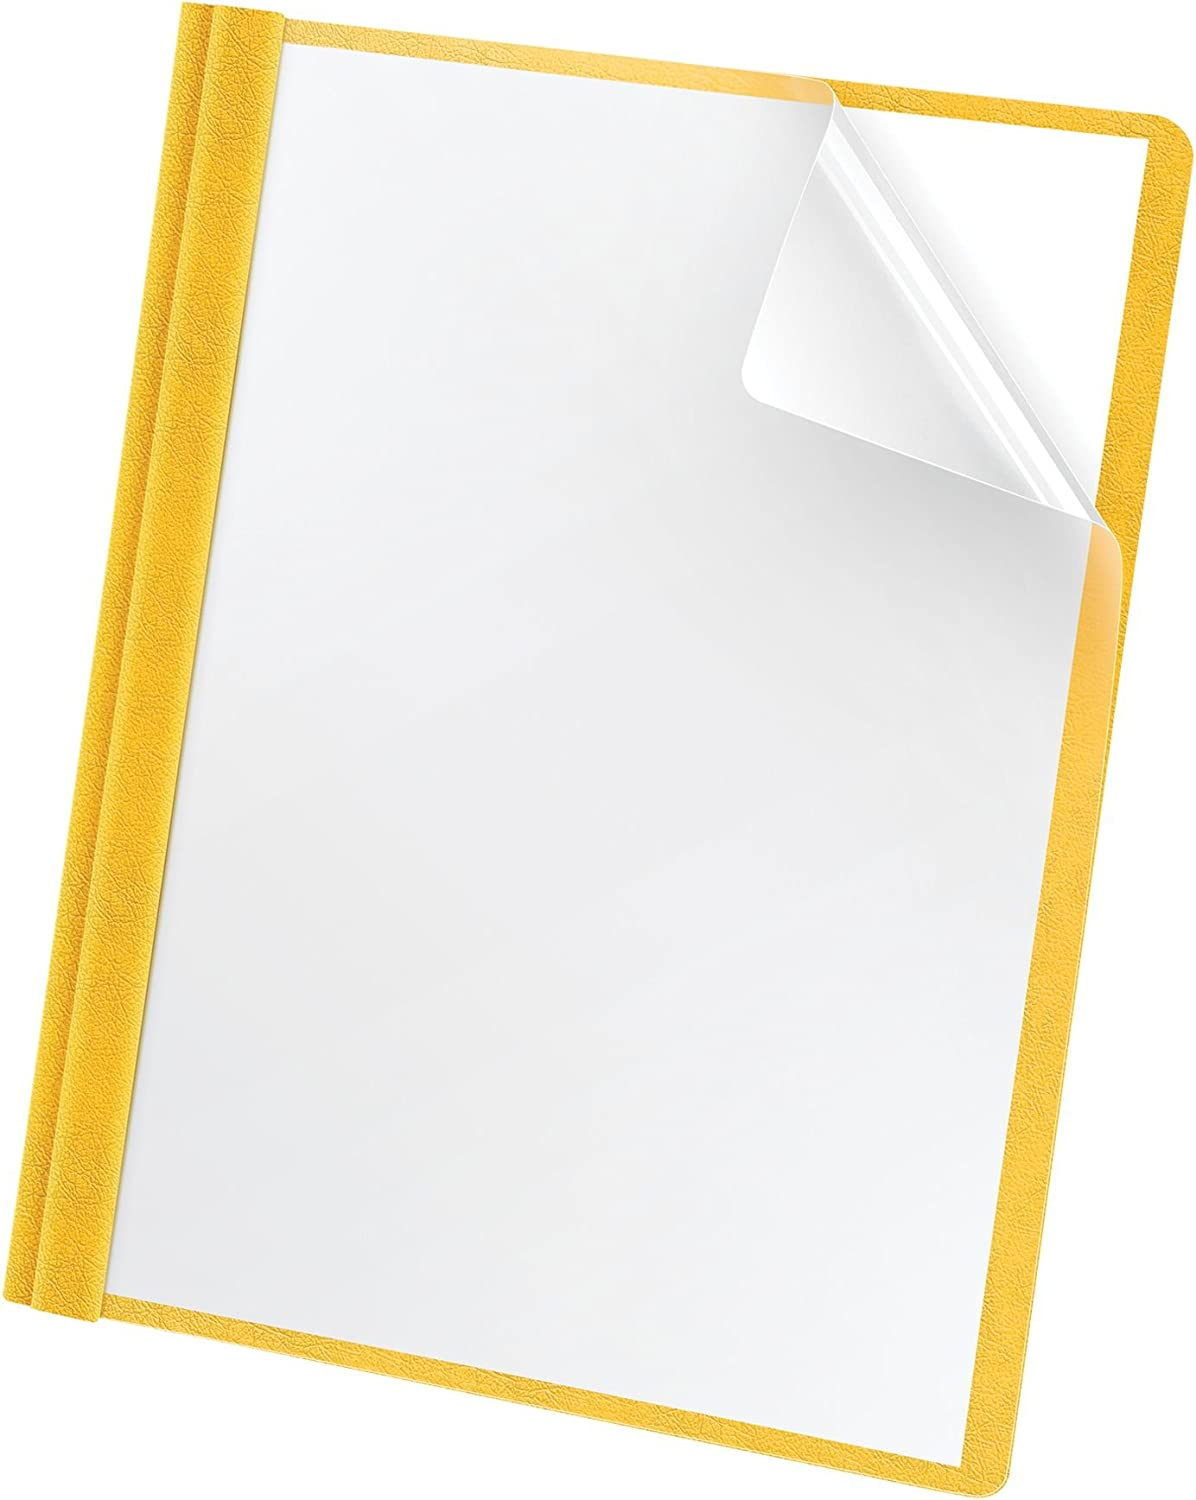 Oxford Premium Clear Front Report Covers, Letter Size, Yellow, 25 per Pack (58809EE) : Project Folders : Office Products